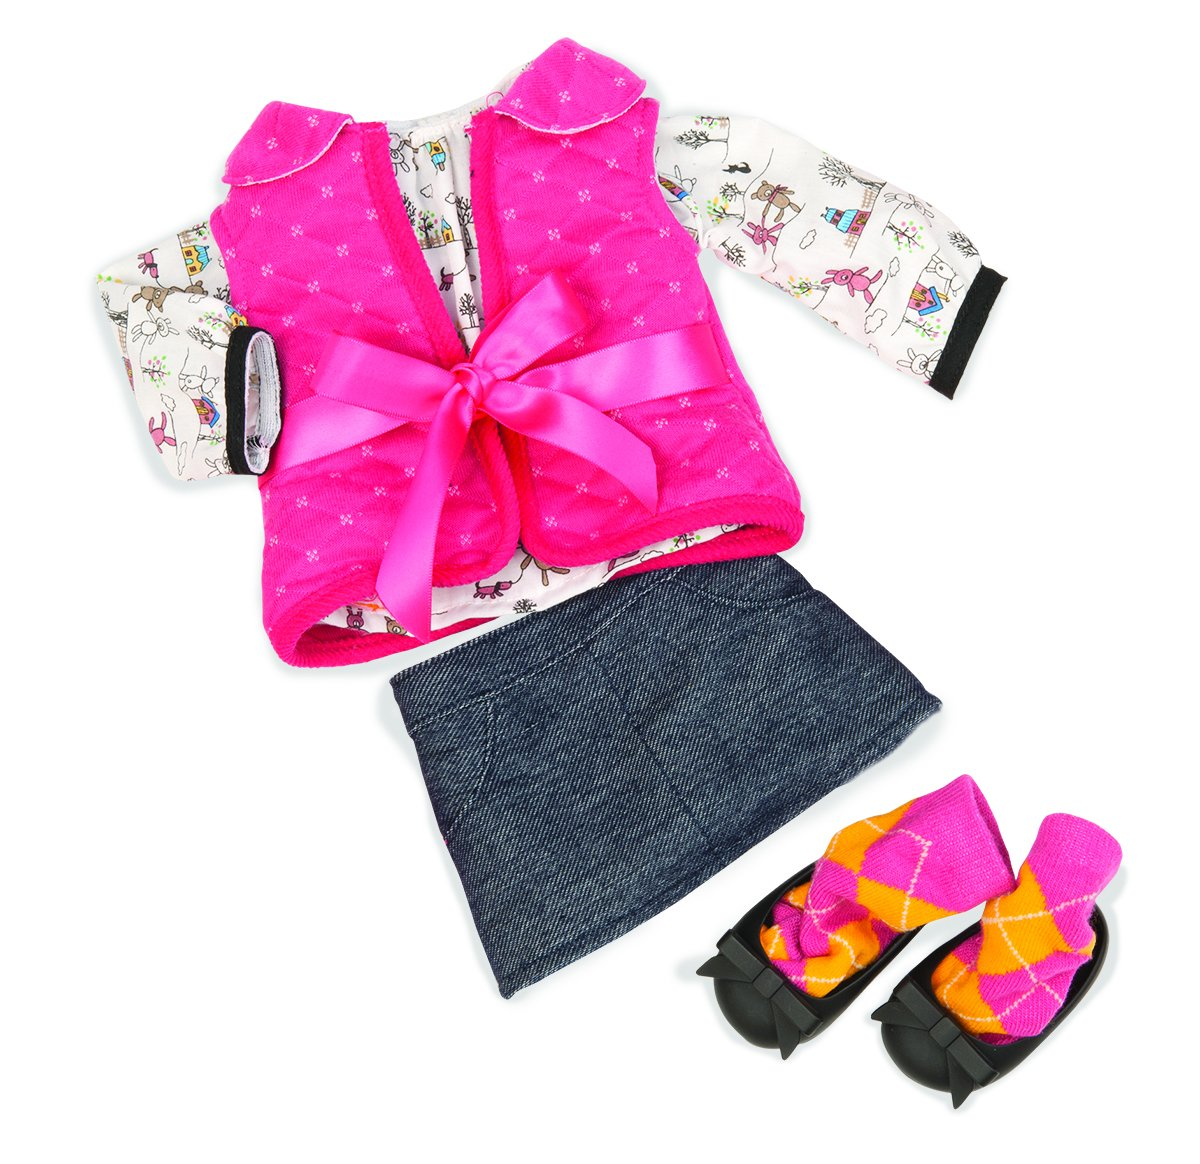 Our Generation 18-inch Cabin Chic Regular Doll Outfit Battat BD30120Z